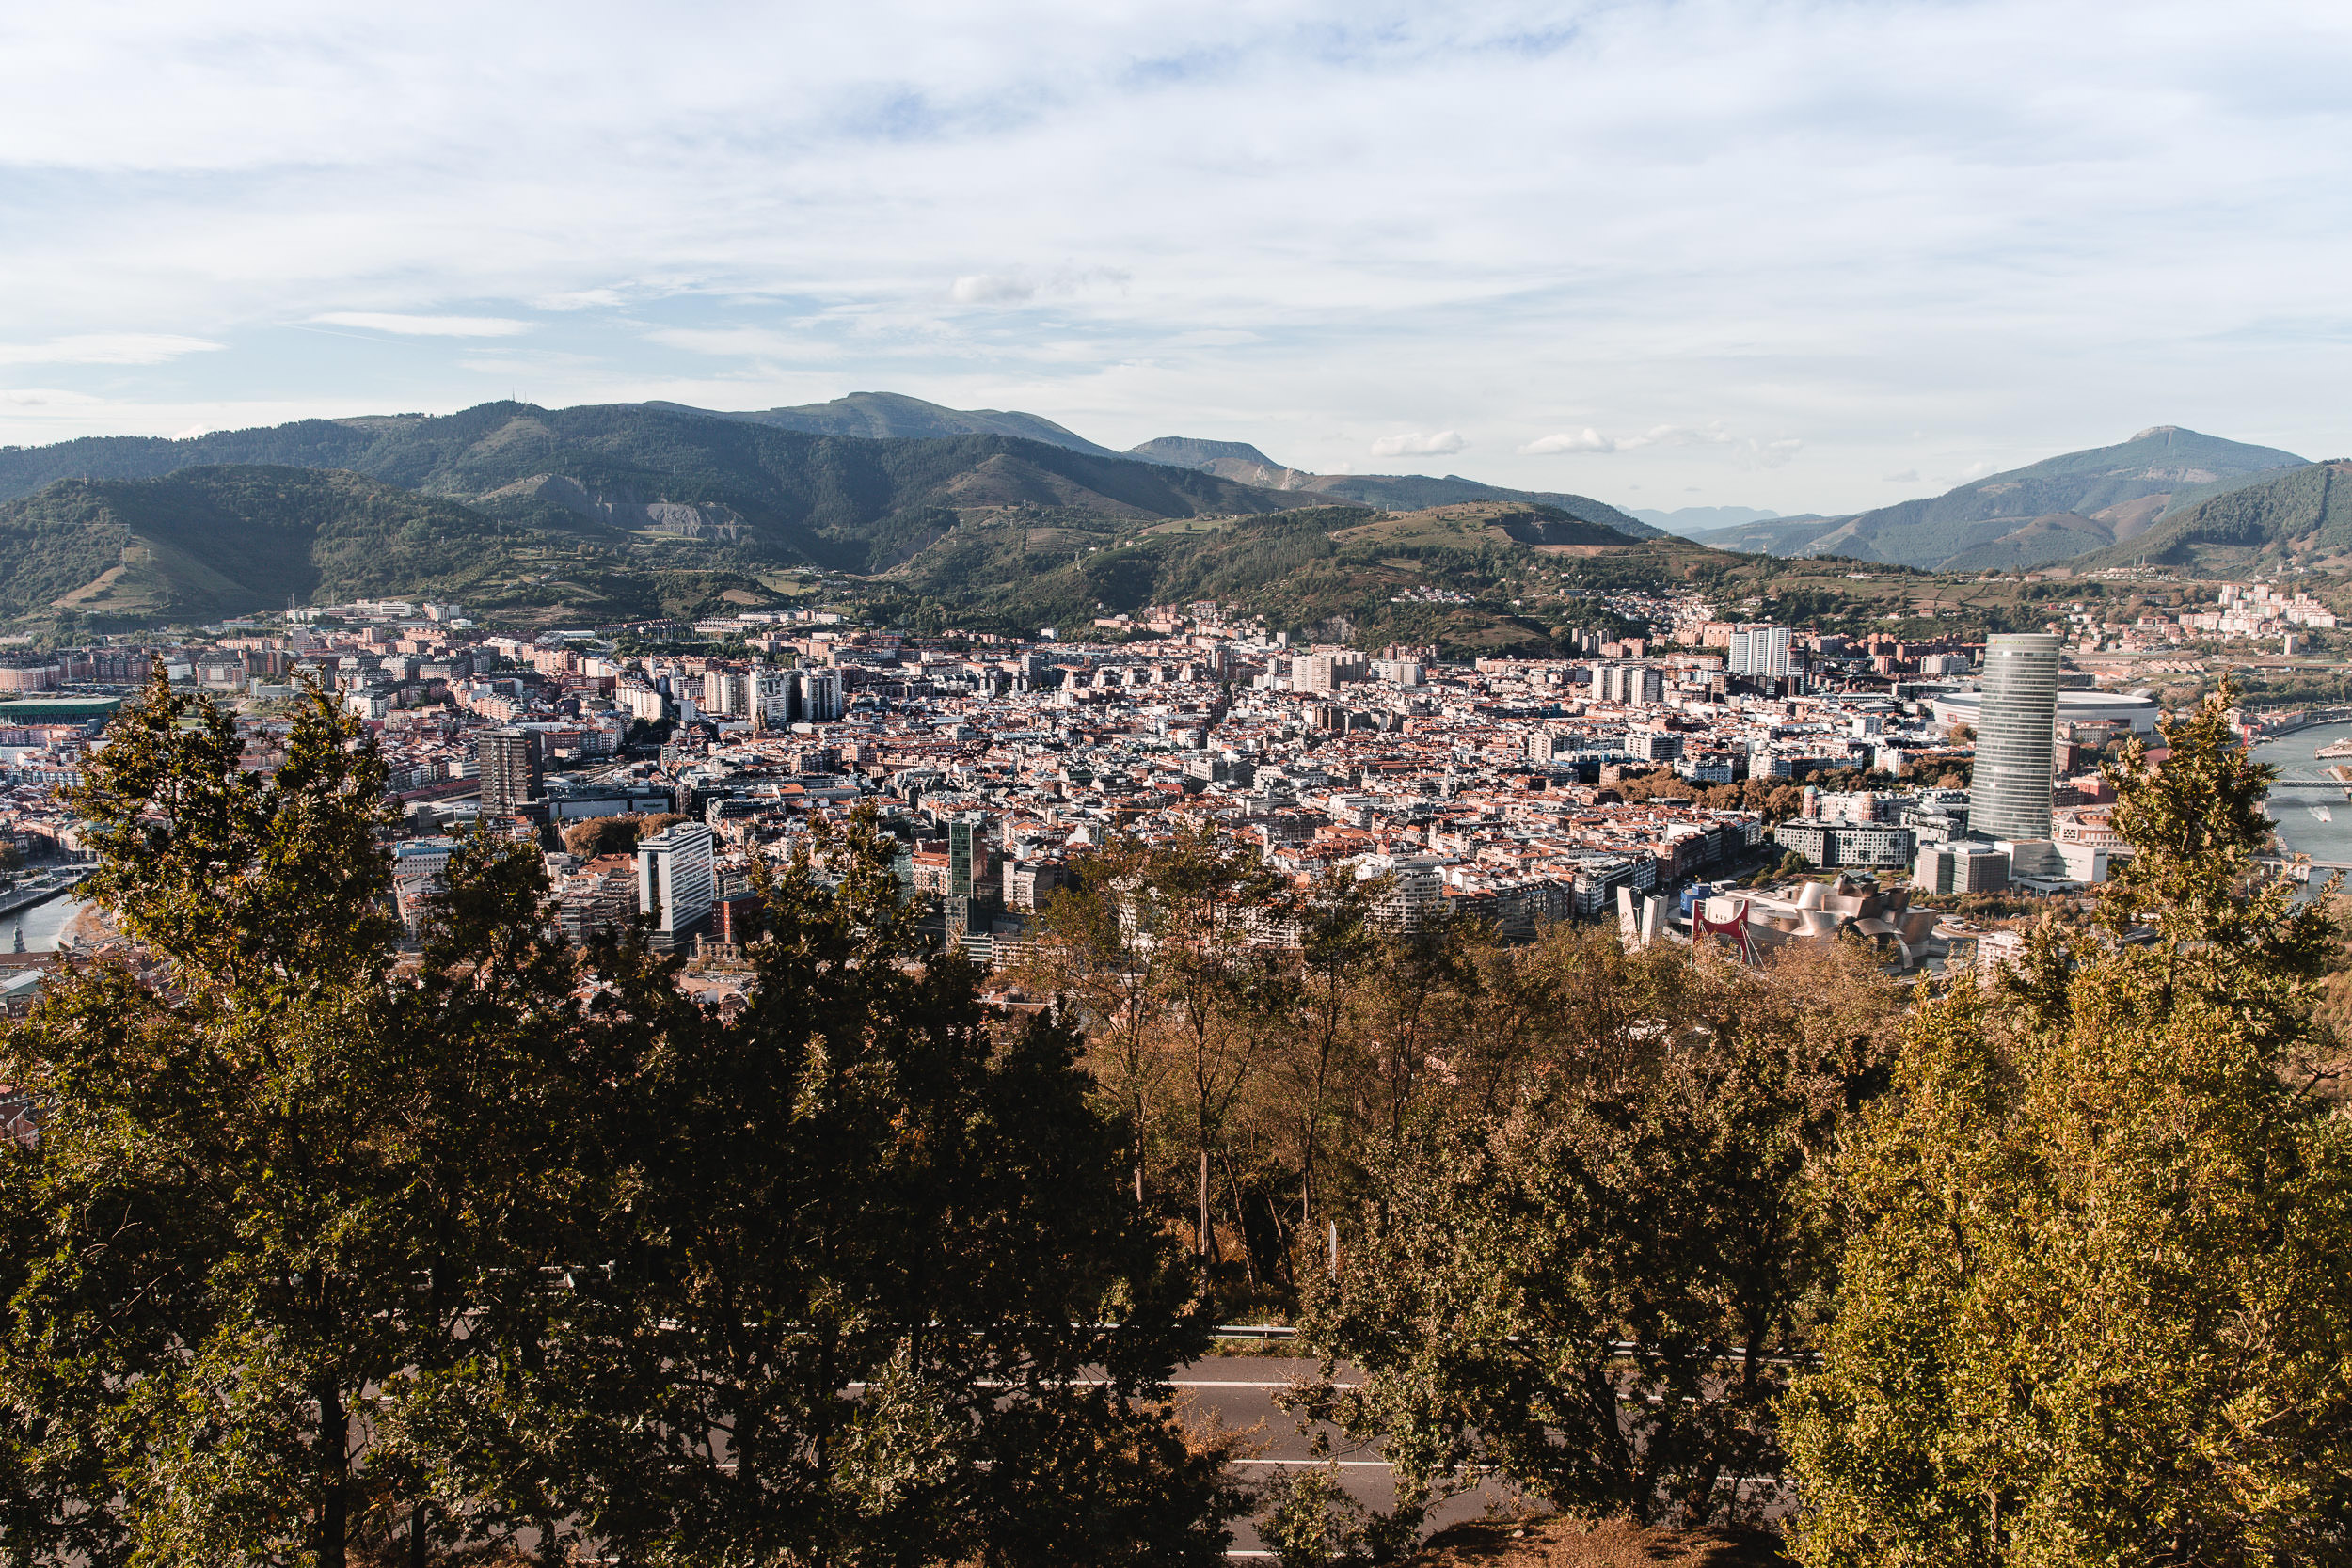 The City of Bilbao as seen from Artxanda Mountain, Basque Country